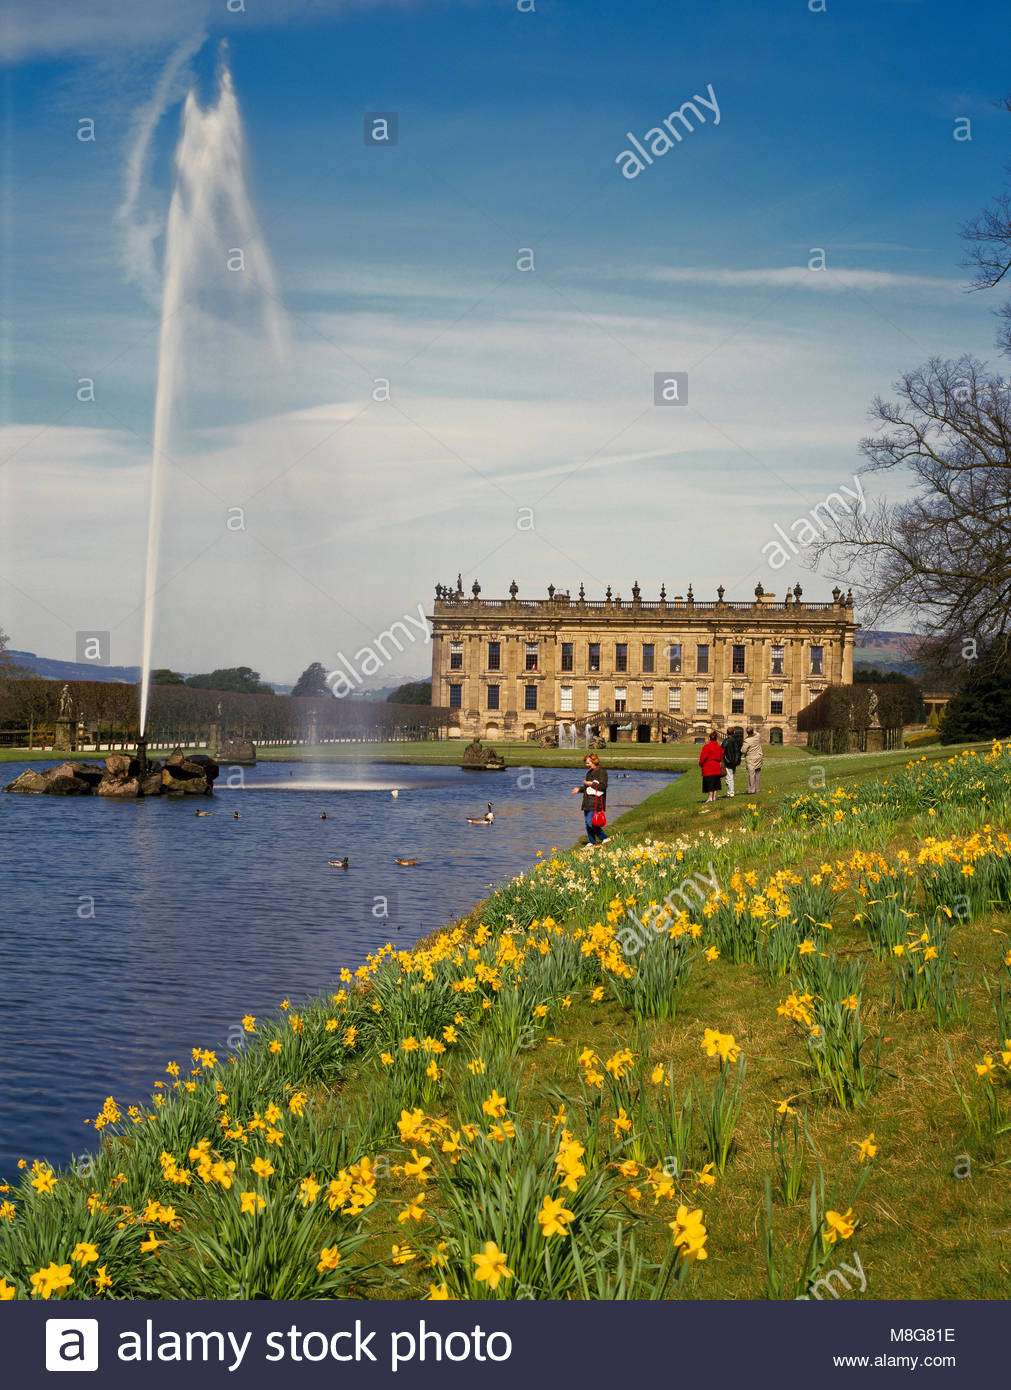 Chatsworth House and the Emperor fountain, Bakewell Derbyshire England UK - Stock Image